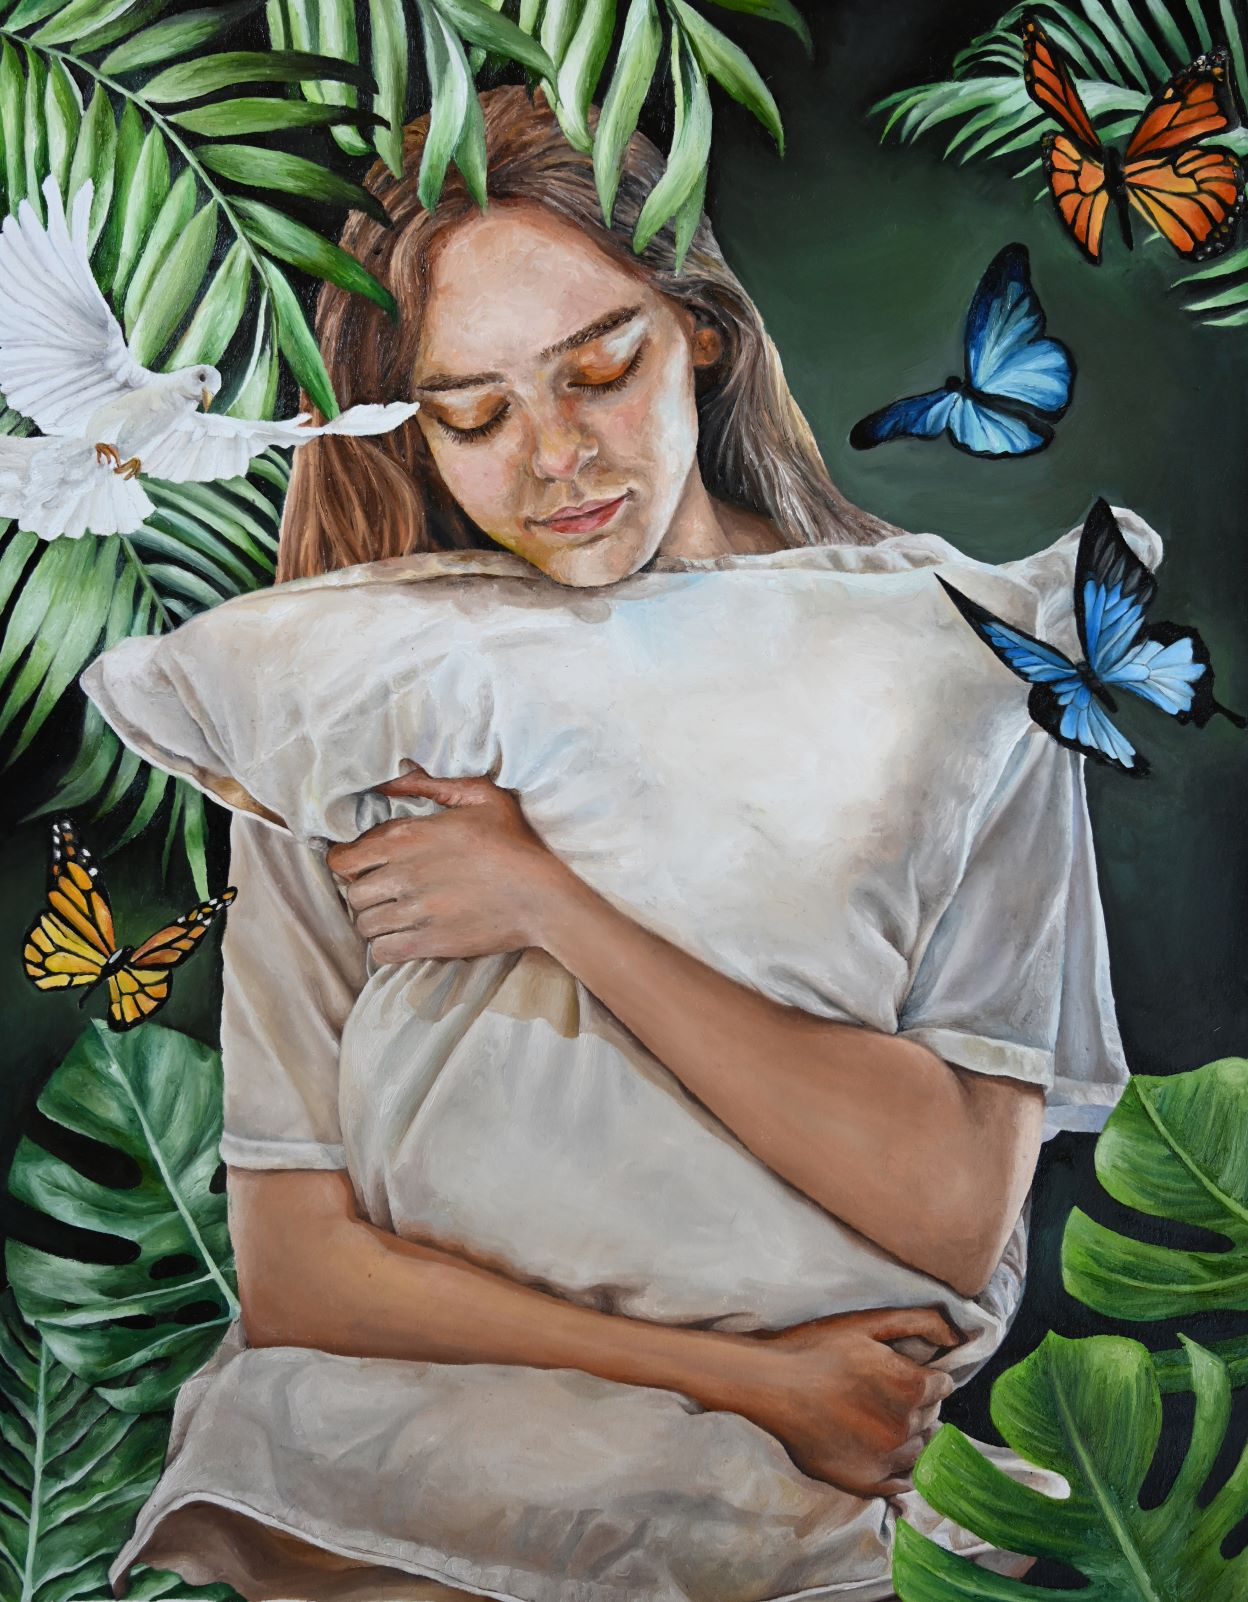 Painting of person holding pillow surrounded by plants, butterflies, and a white dove.